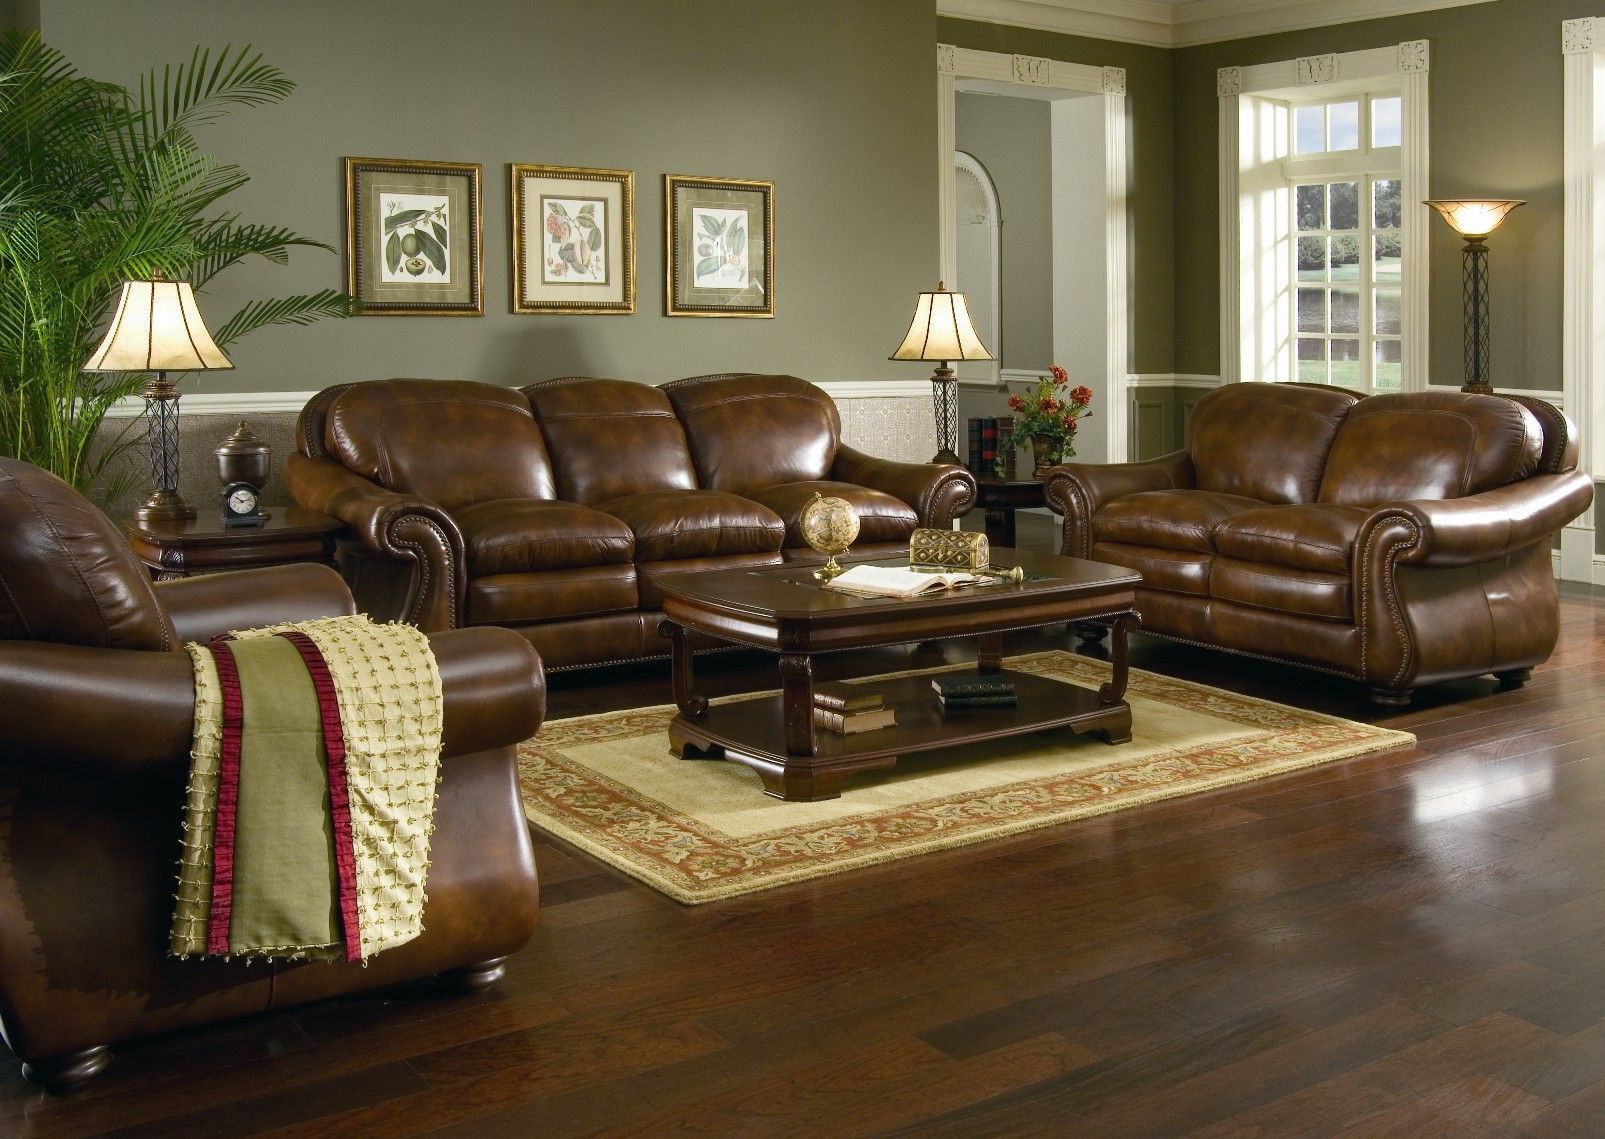 Living room color combinations with brown furniture - Paint Ideas Living Room Brown Furniture Colors Of Living Room Leather Sofa Minimalist Home Decor Design Ideas